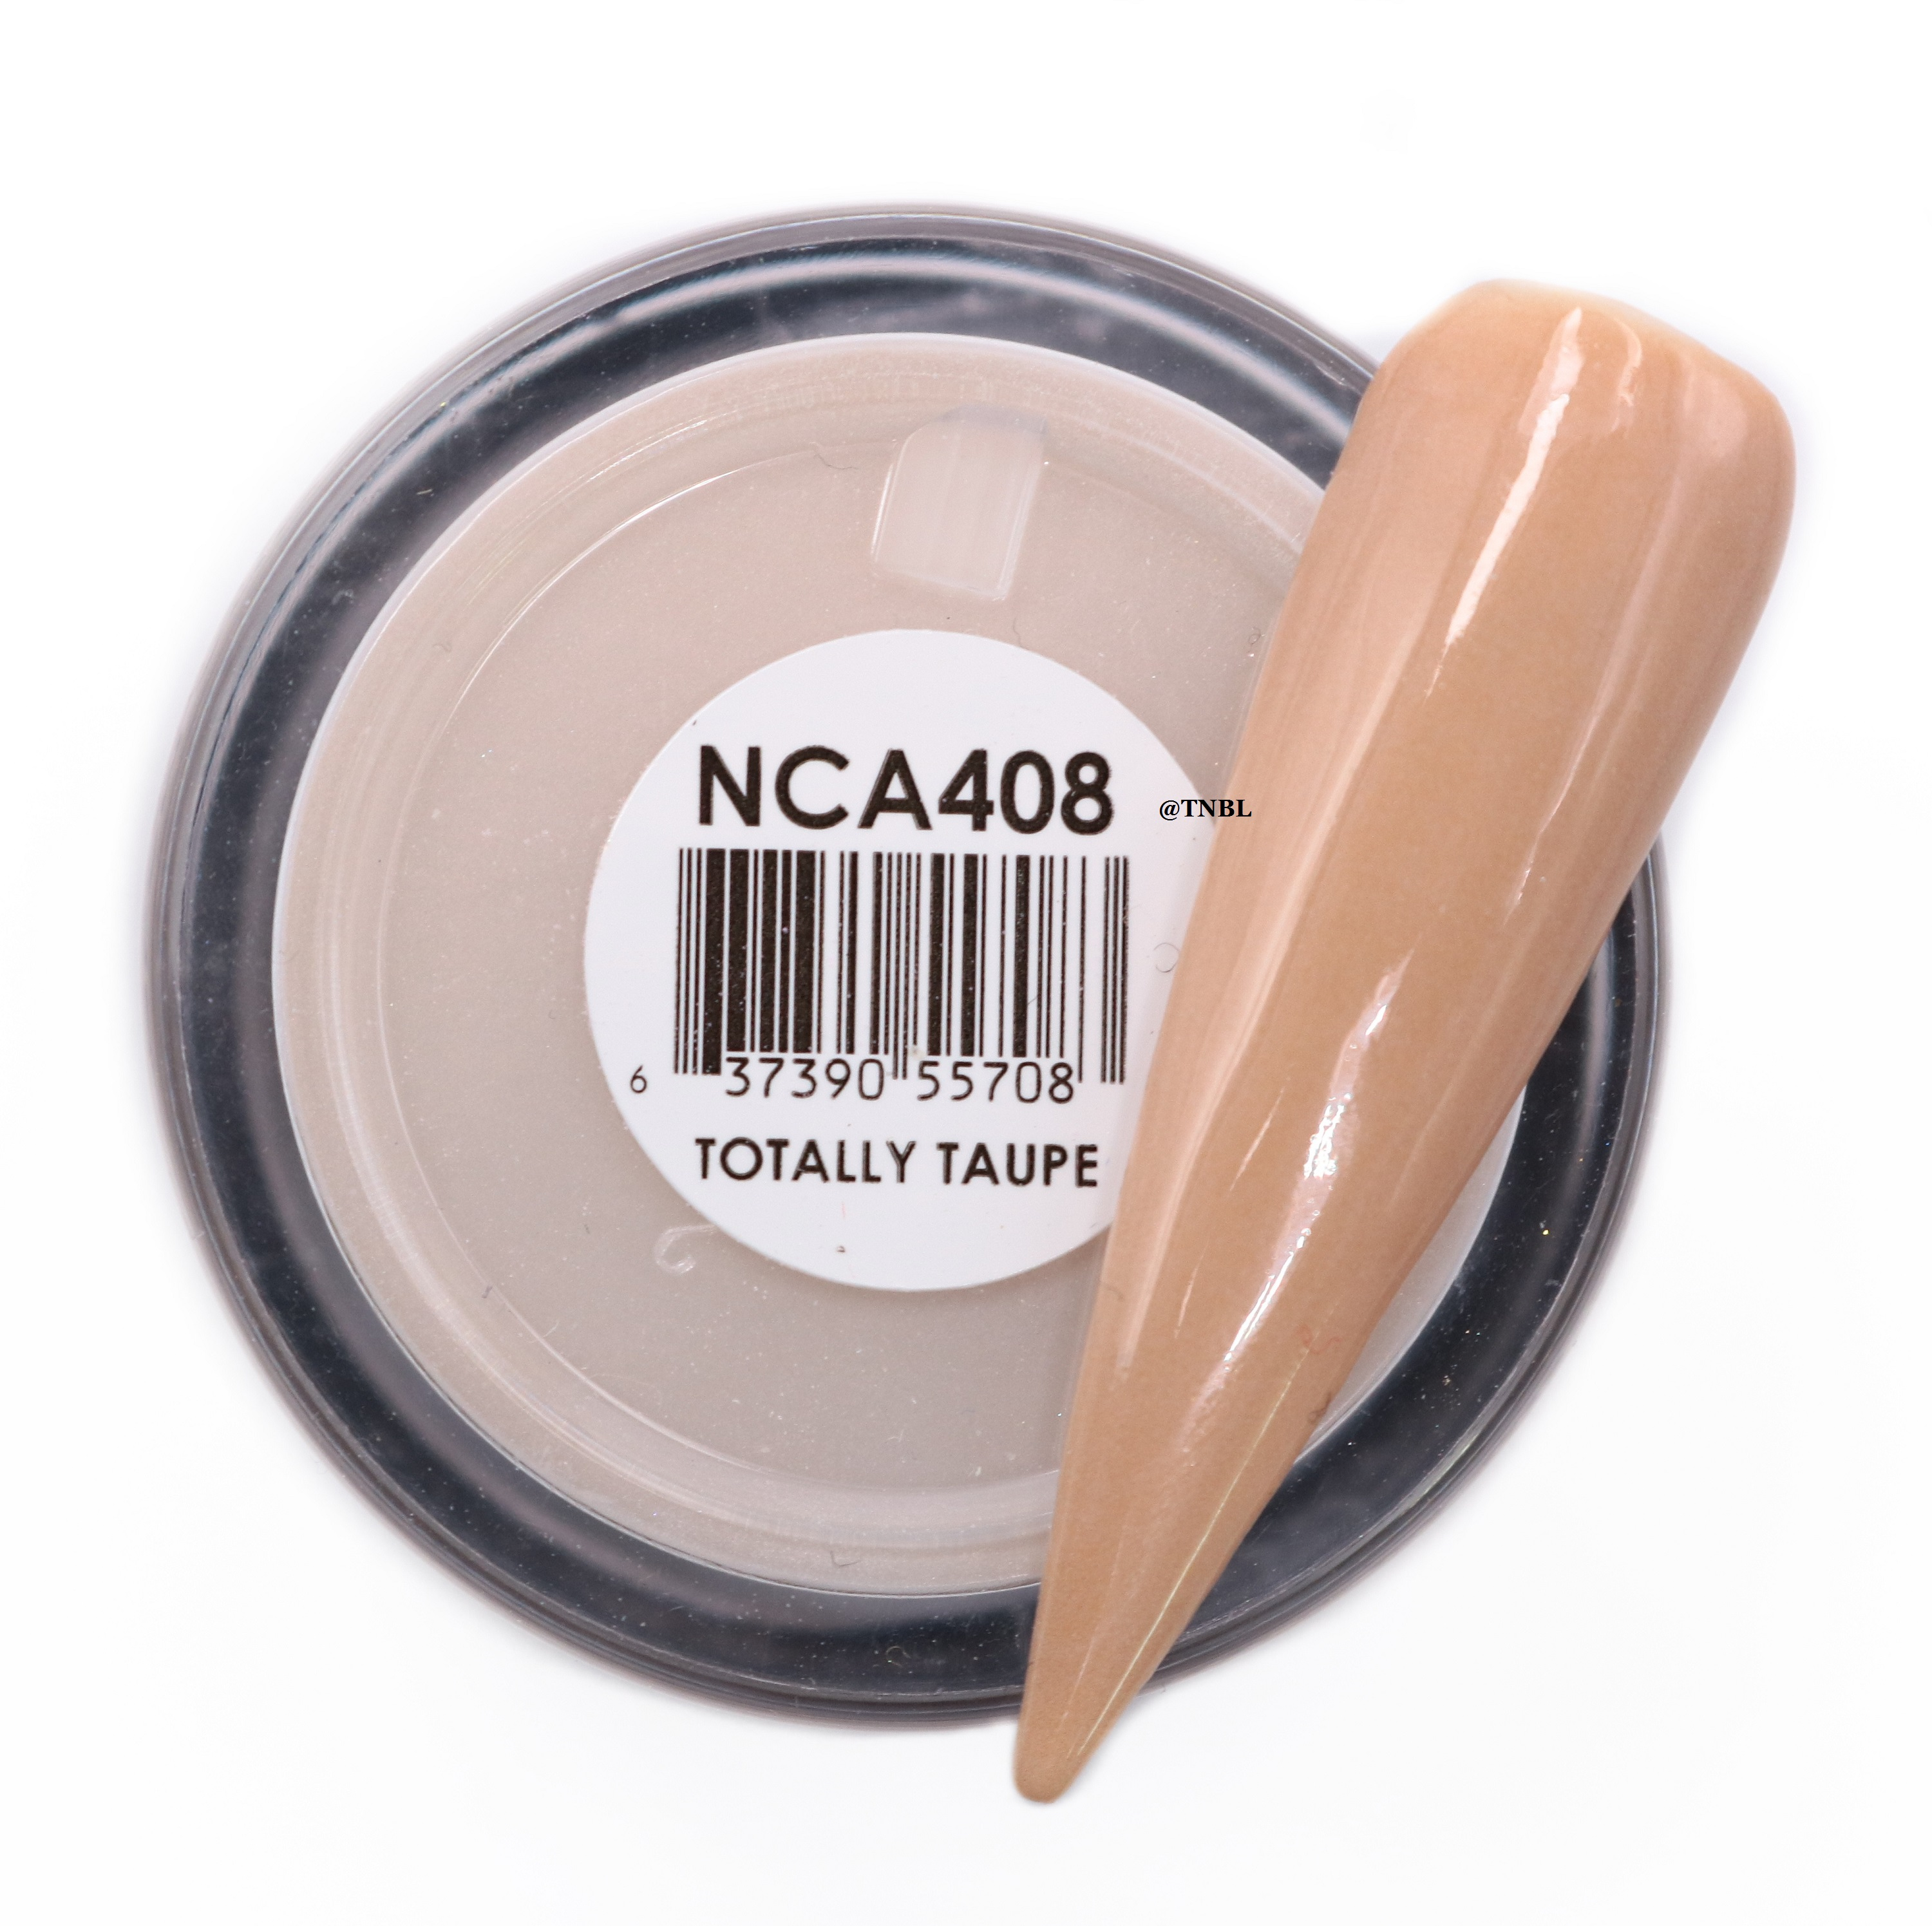 Glam and Glits Naked Acrylic Colour Powder - NCAC408 TOTALLY TAUPE The Nail  & Beauty Link